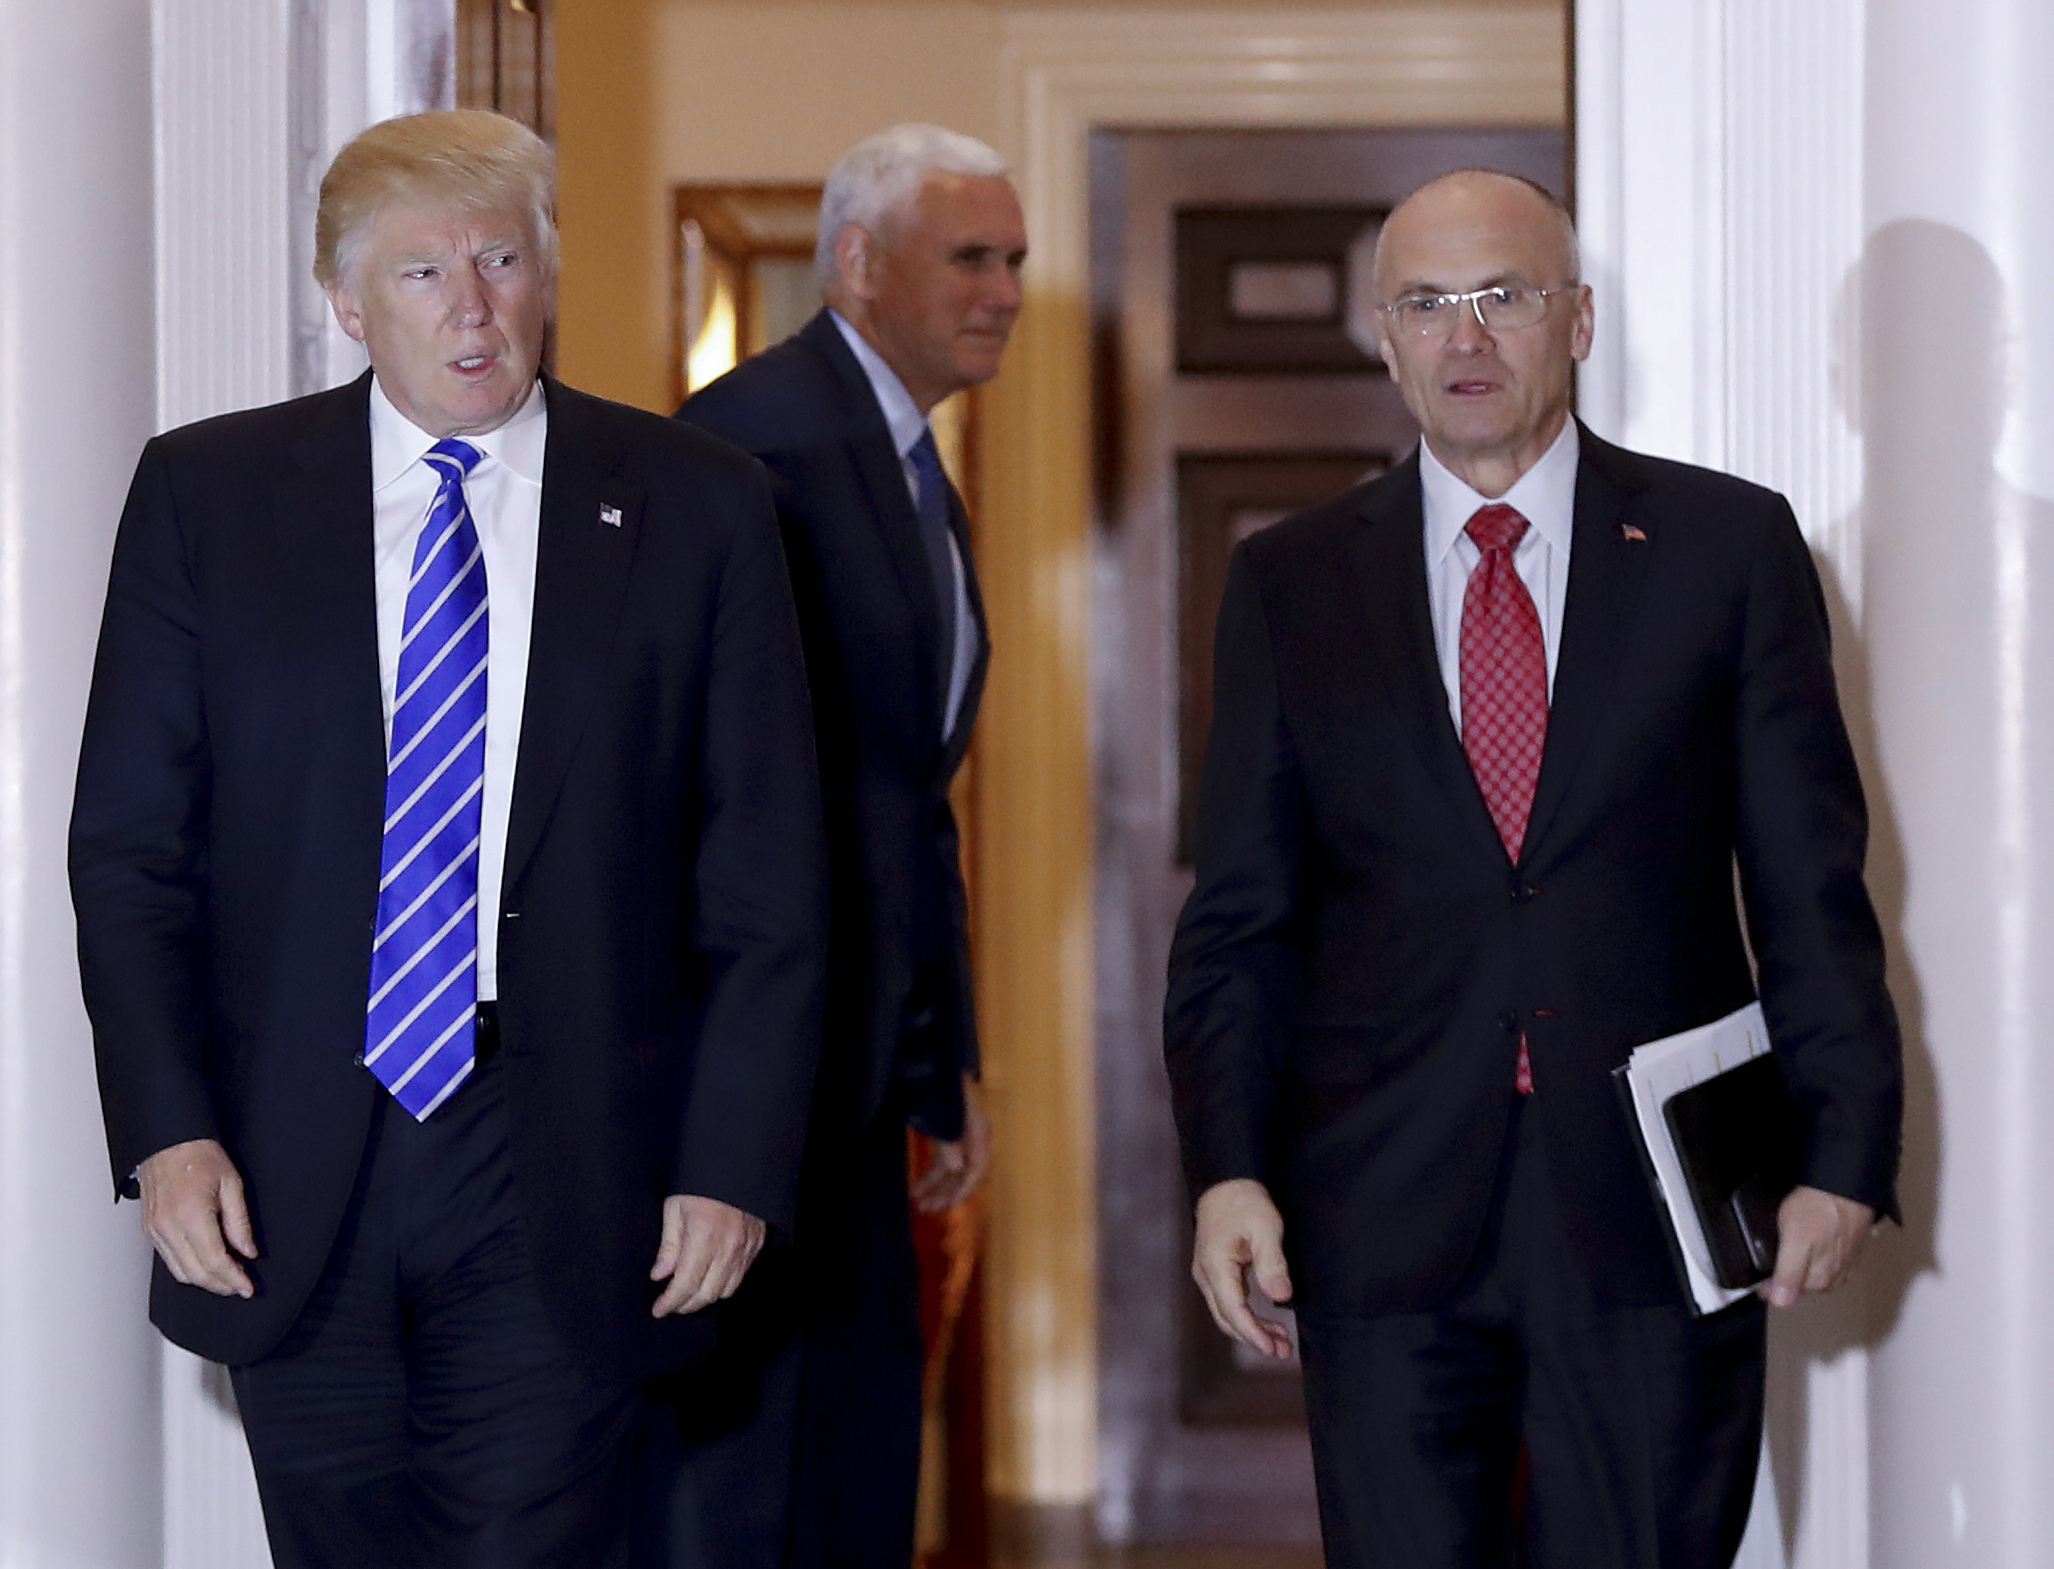 Then-President-elect Donald Trump walks Labor Secretary-designate Andy Puzder from Trump National Golf Club Bedminster clubhouse in Bedminster, N.J., on Nov. 19, 2016. (AP Photo/Carolyn Kaster, File)